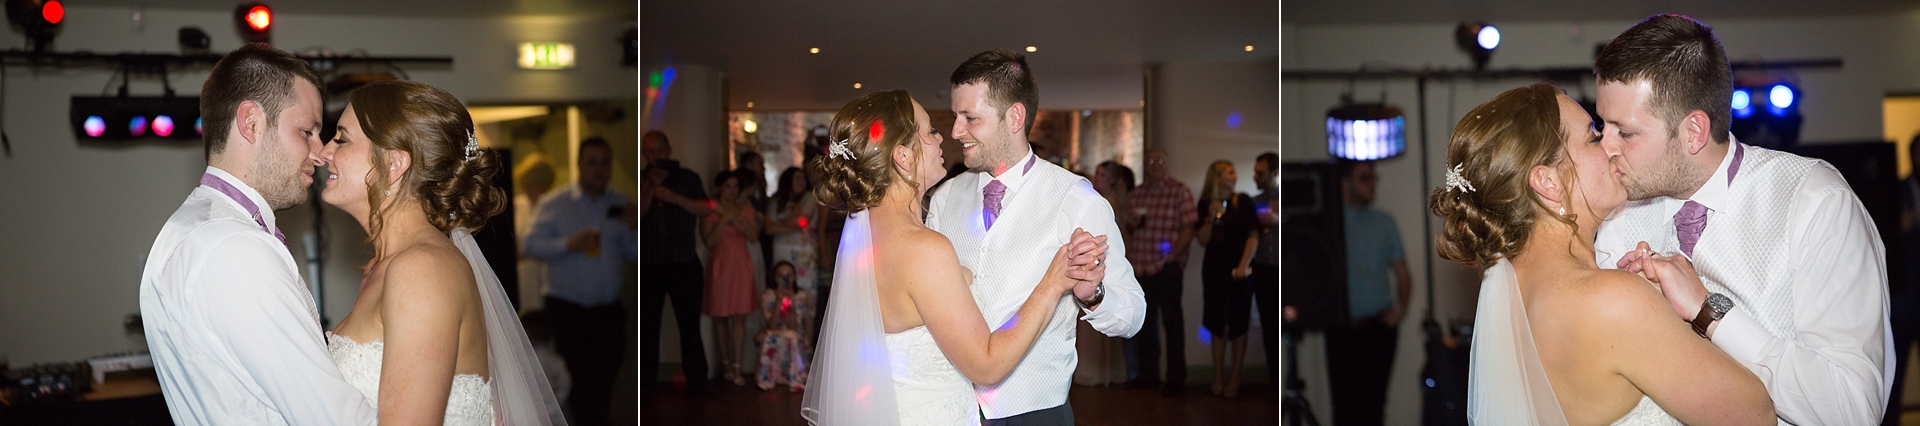 wedding photographer stoke on trent the ashes endon 16.jpg